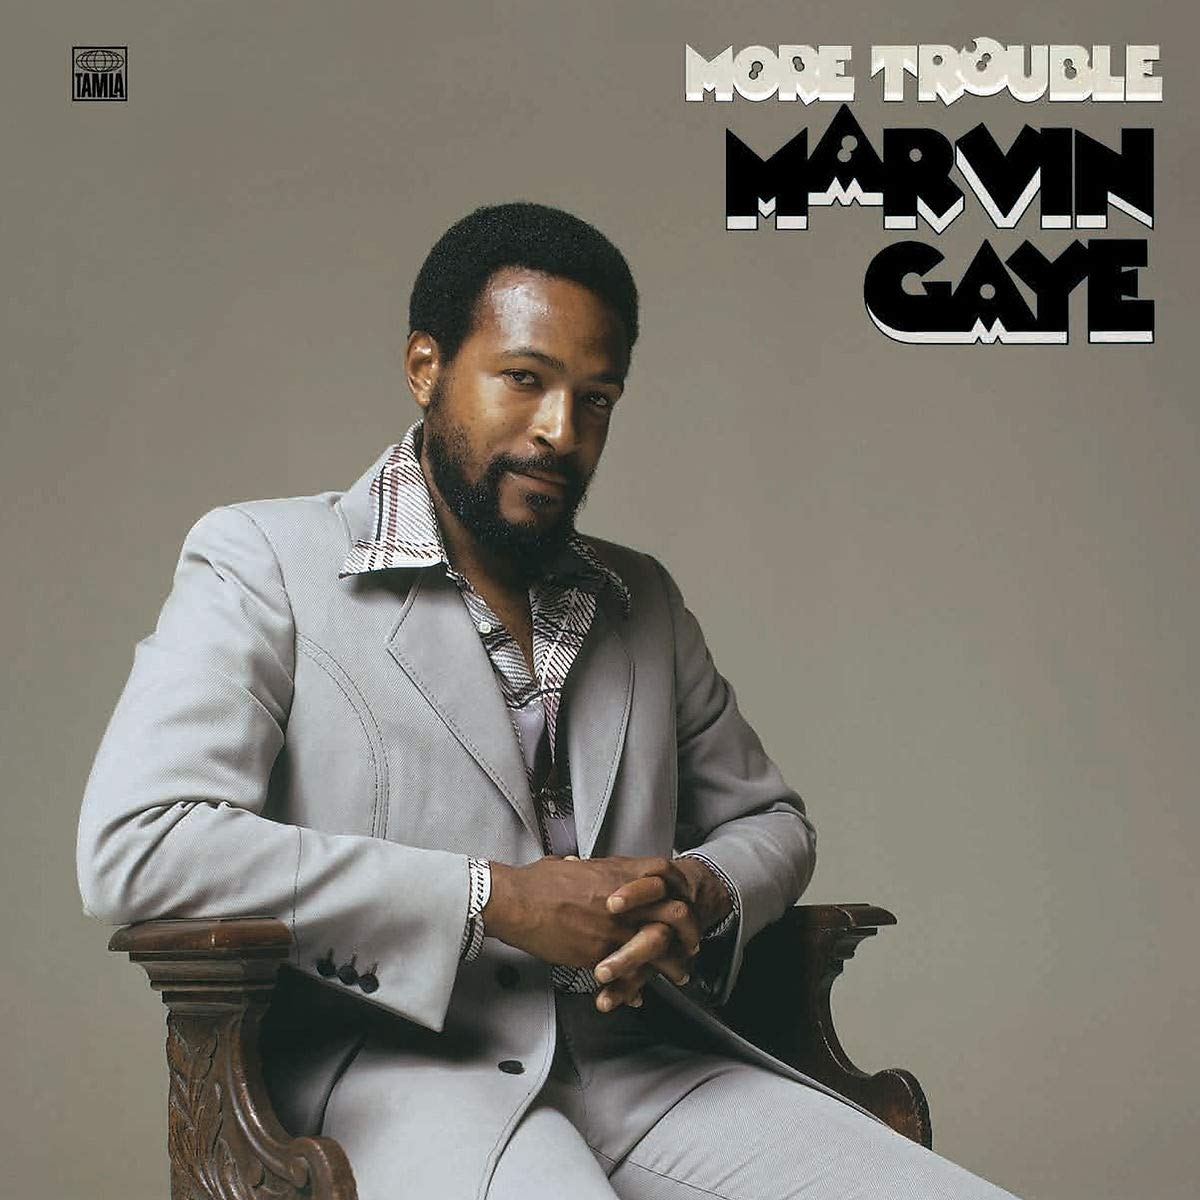 More Trouble - Marvin Gaye